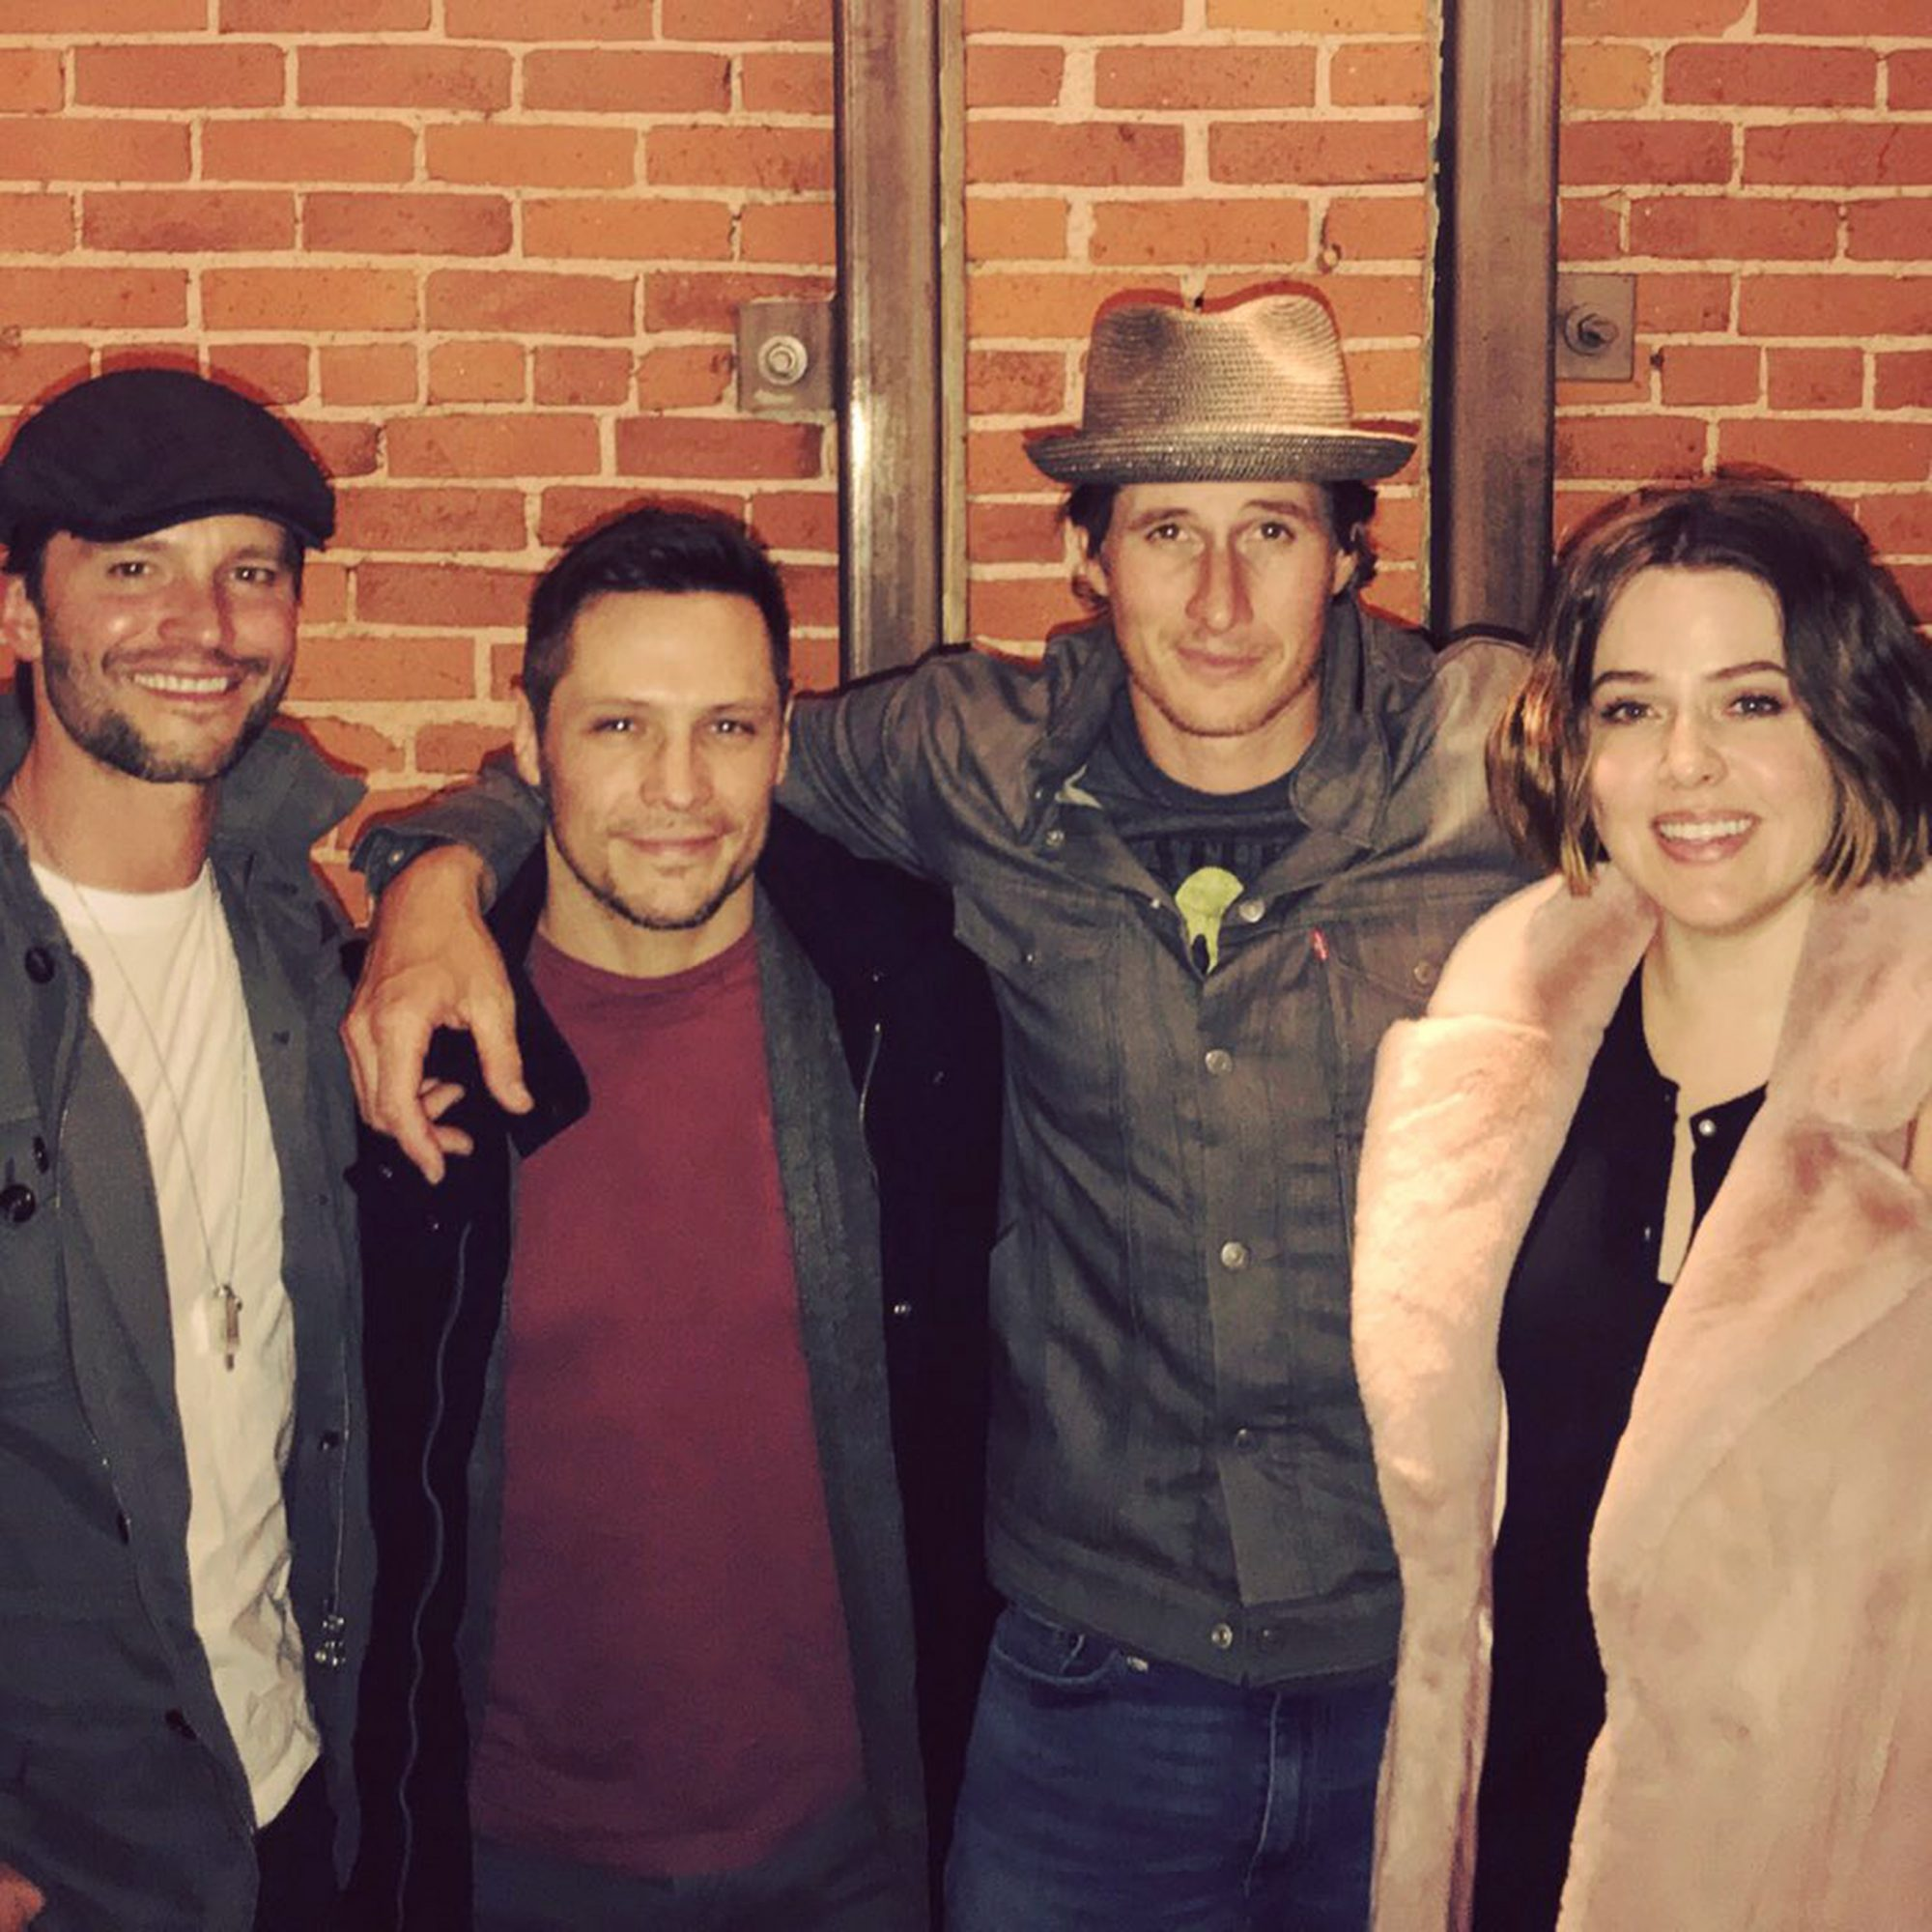 """An out-of-this-world reunion! Jason Behr, Nick Wechsler, Brendan Fehr and Majandra Delfino caught up nearly 17 years after the show's final episode in 2002. """"Turns out we still kinda like each other,"""" Fehr joked on Twitter."""